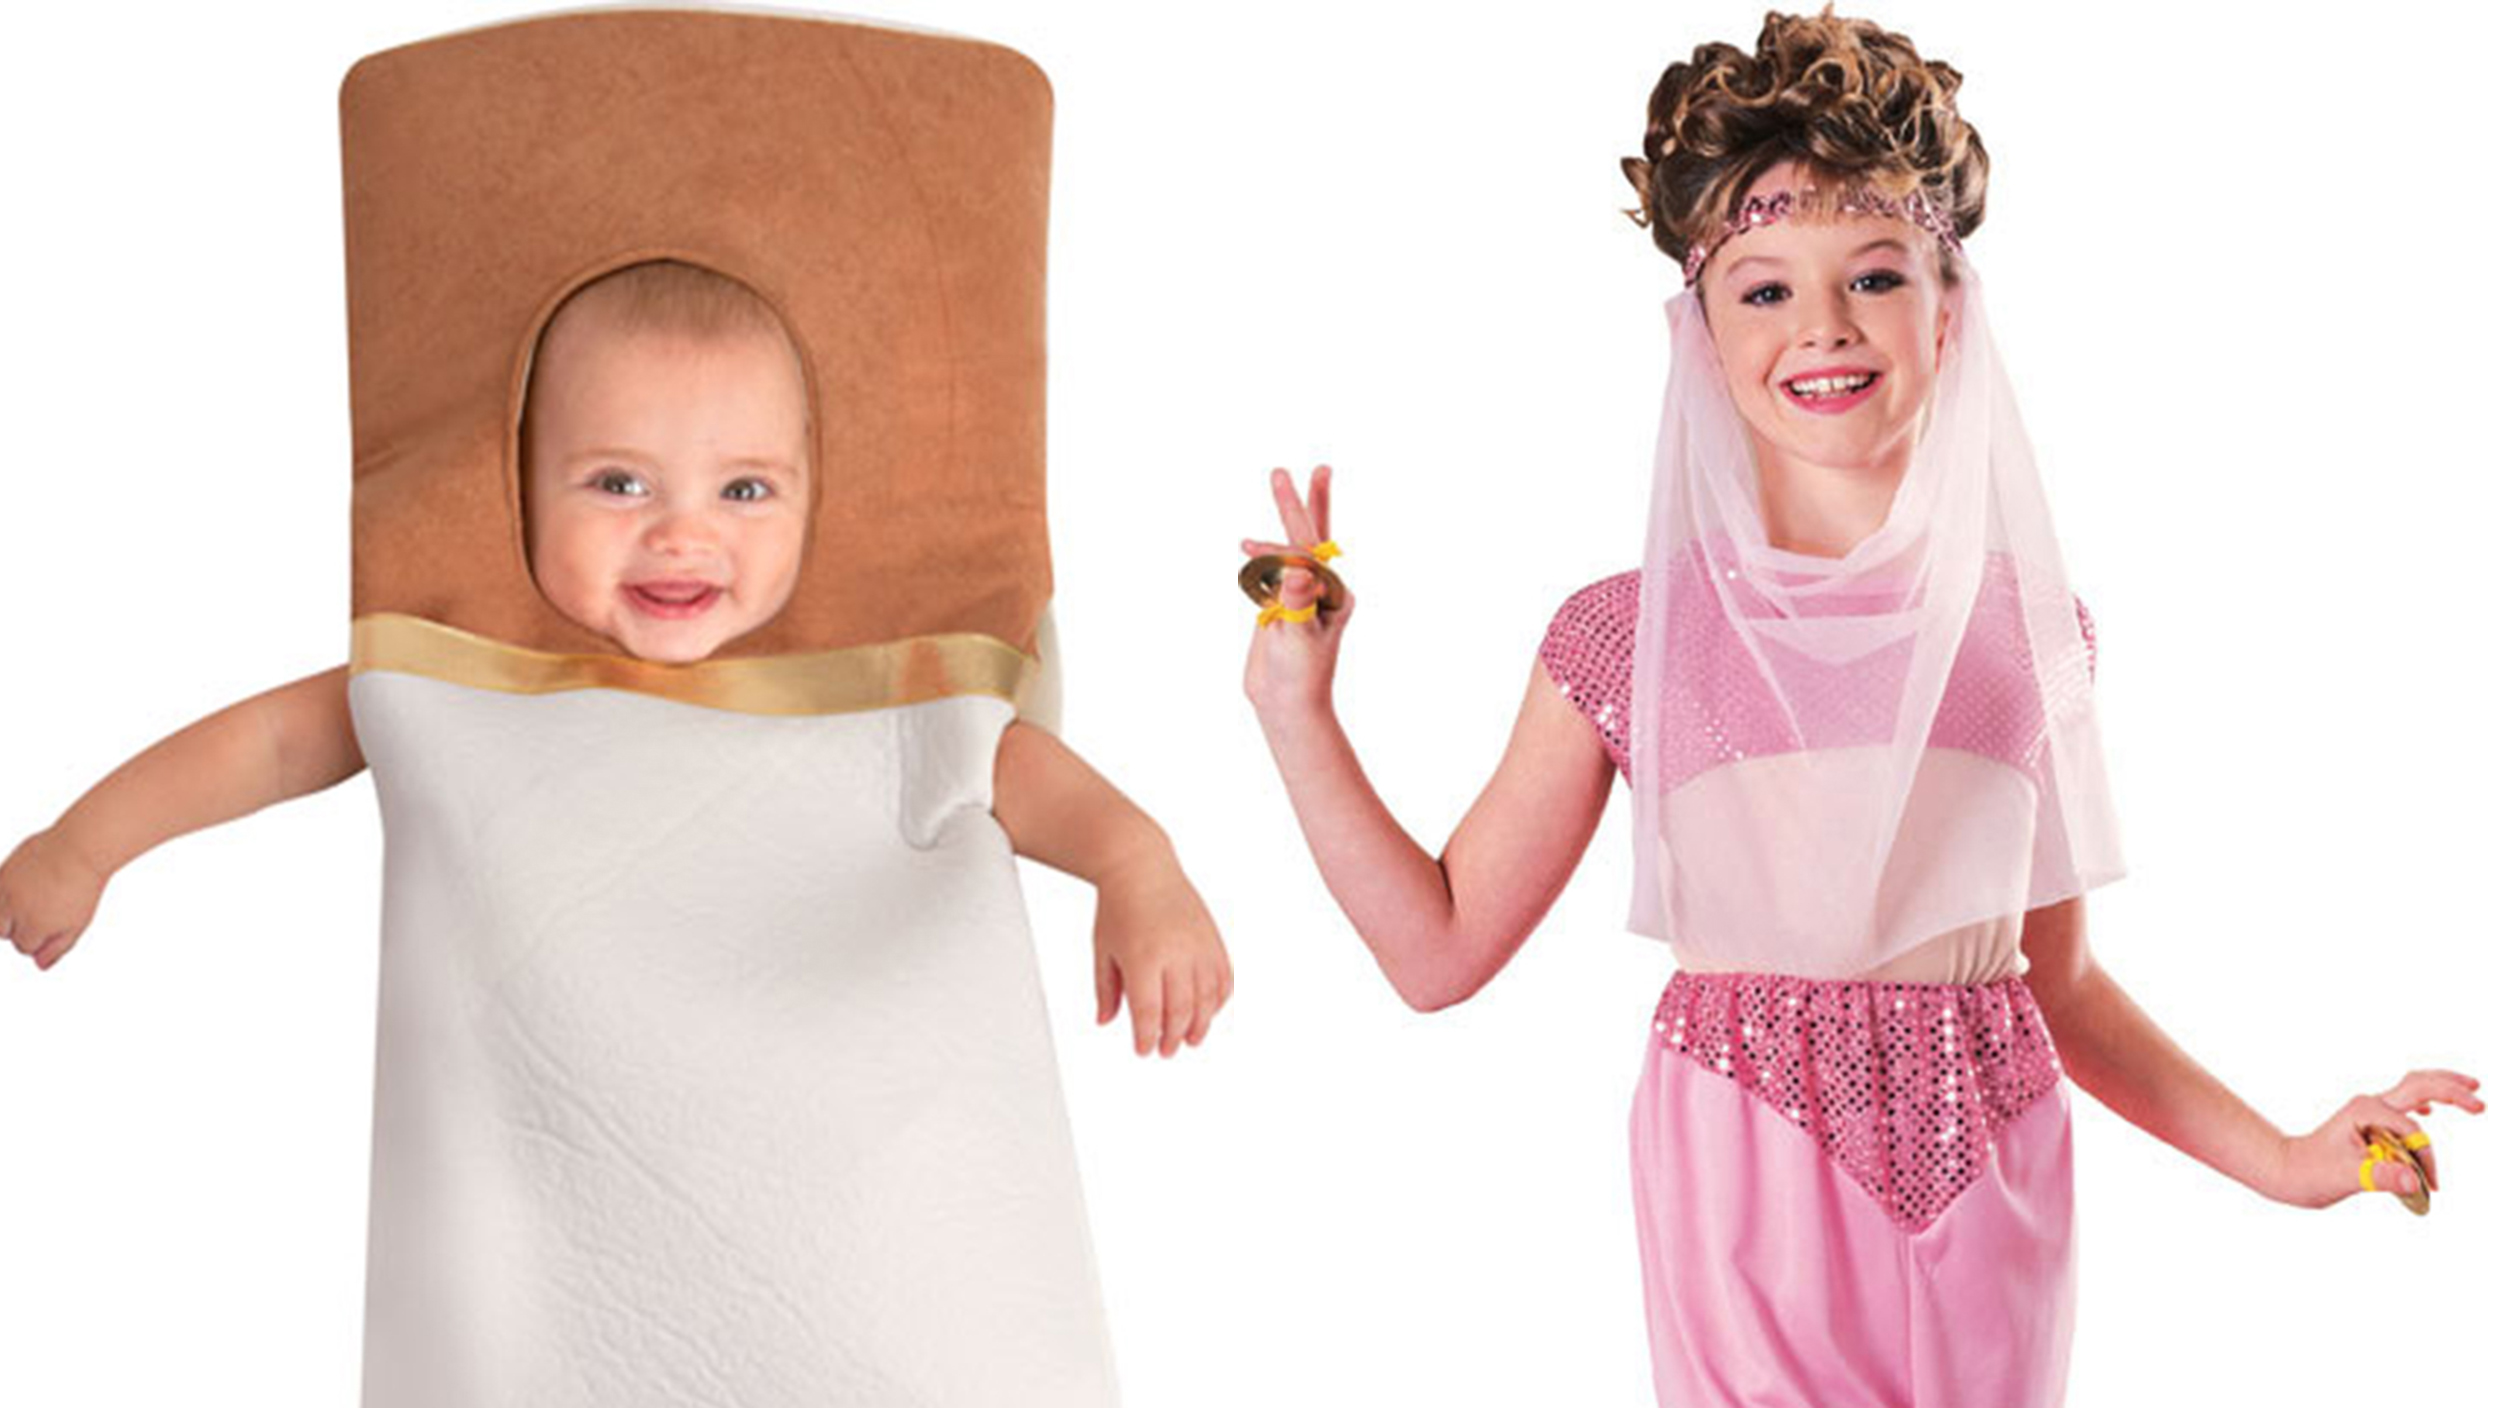 sc 1 st  Today Show & Scary bad: 9 worst Halloween costumes for kids